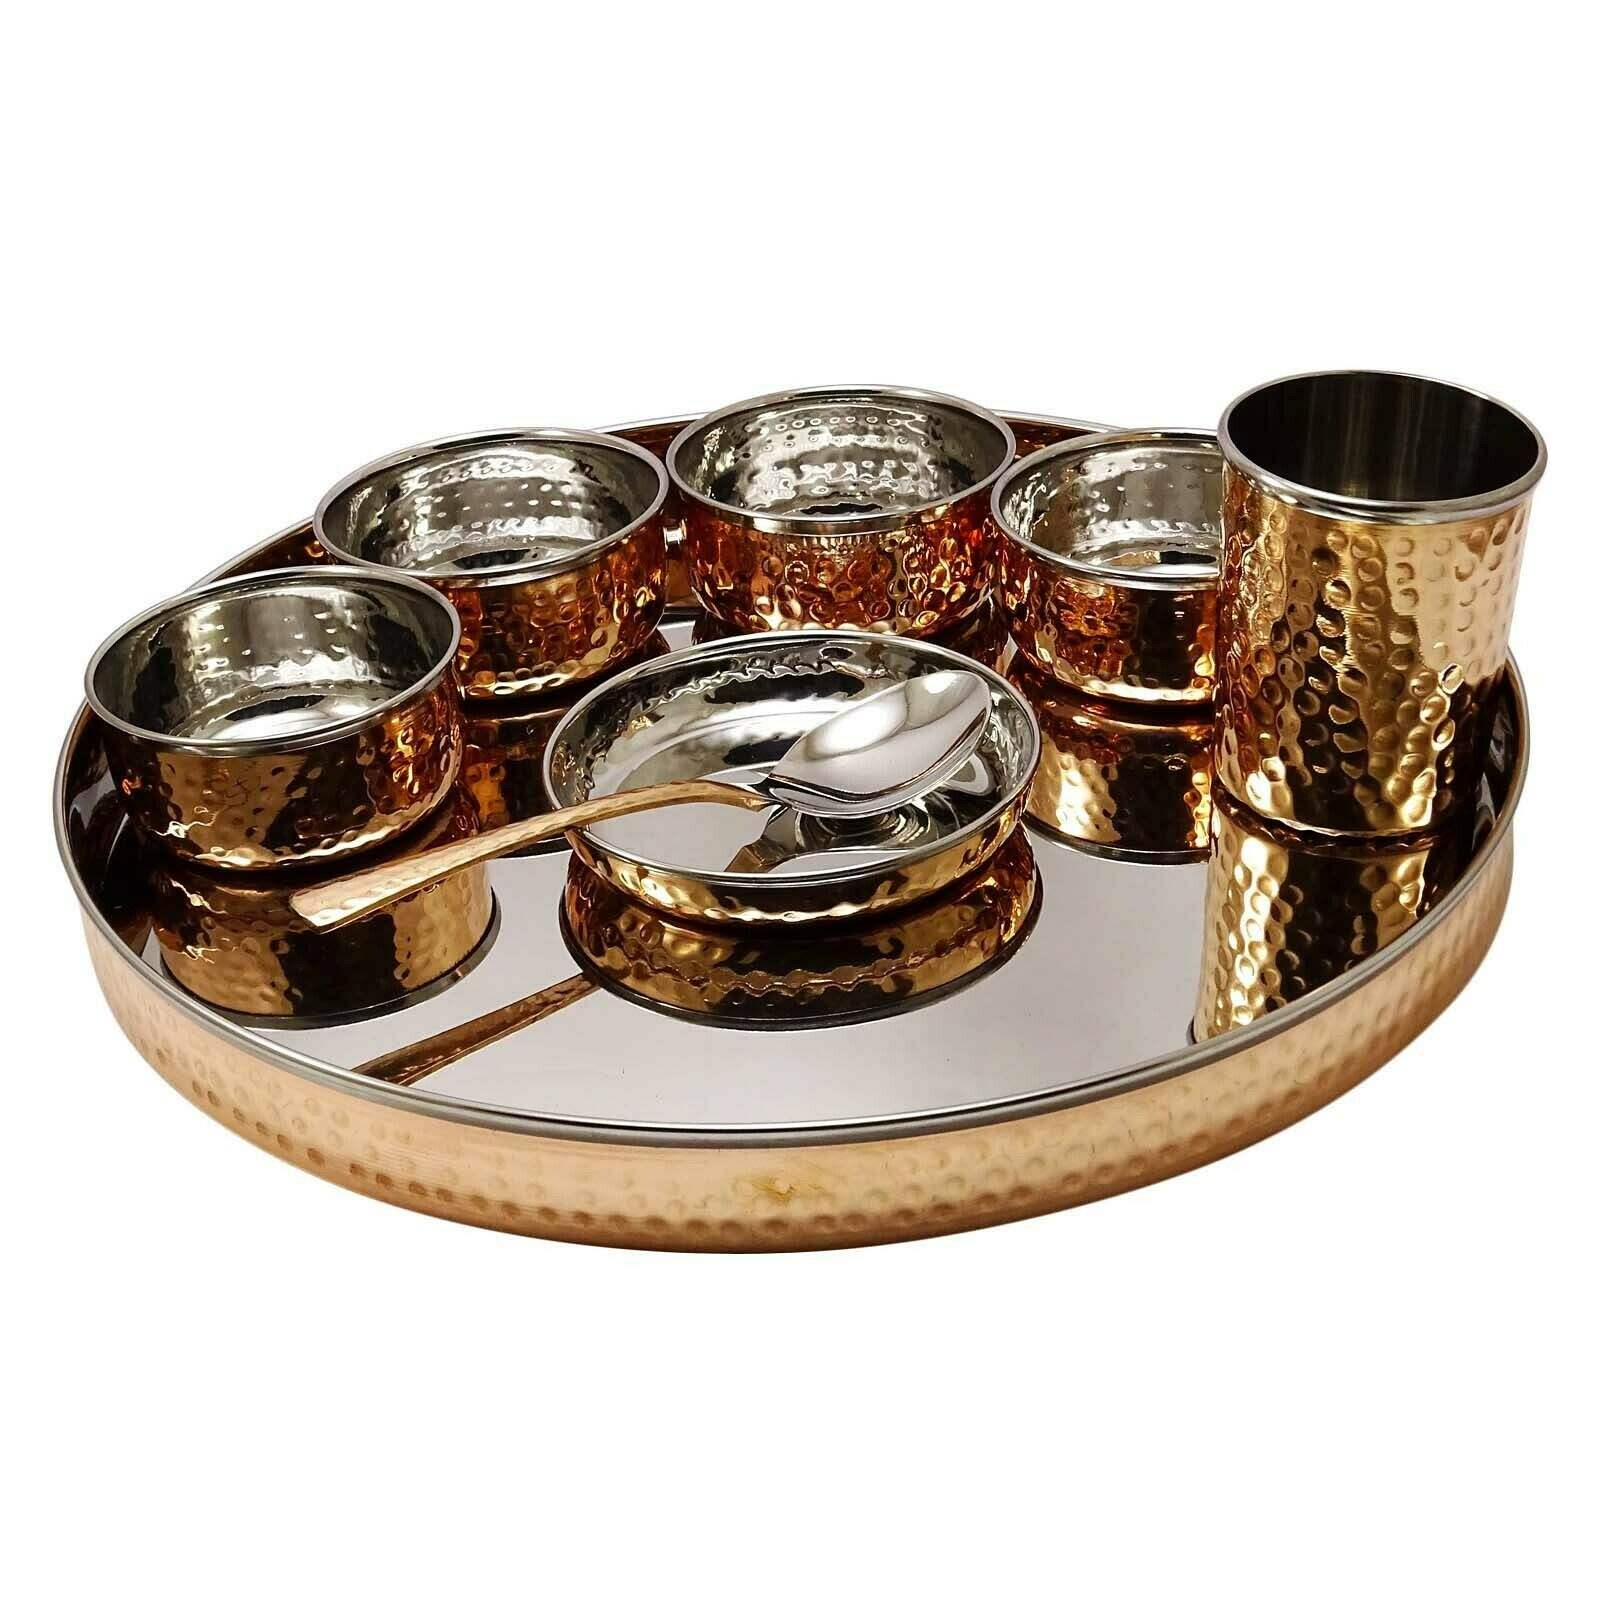 Stainless steel Copper Thali Set and copper moon thali